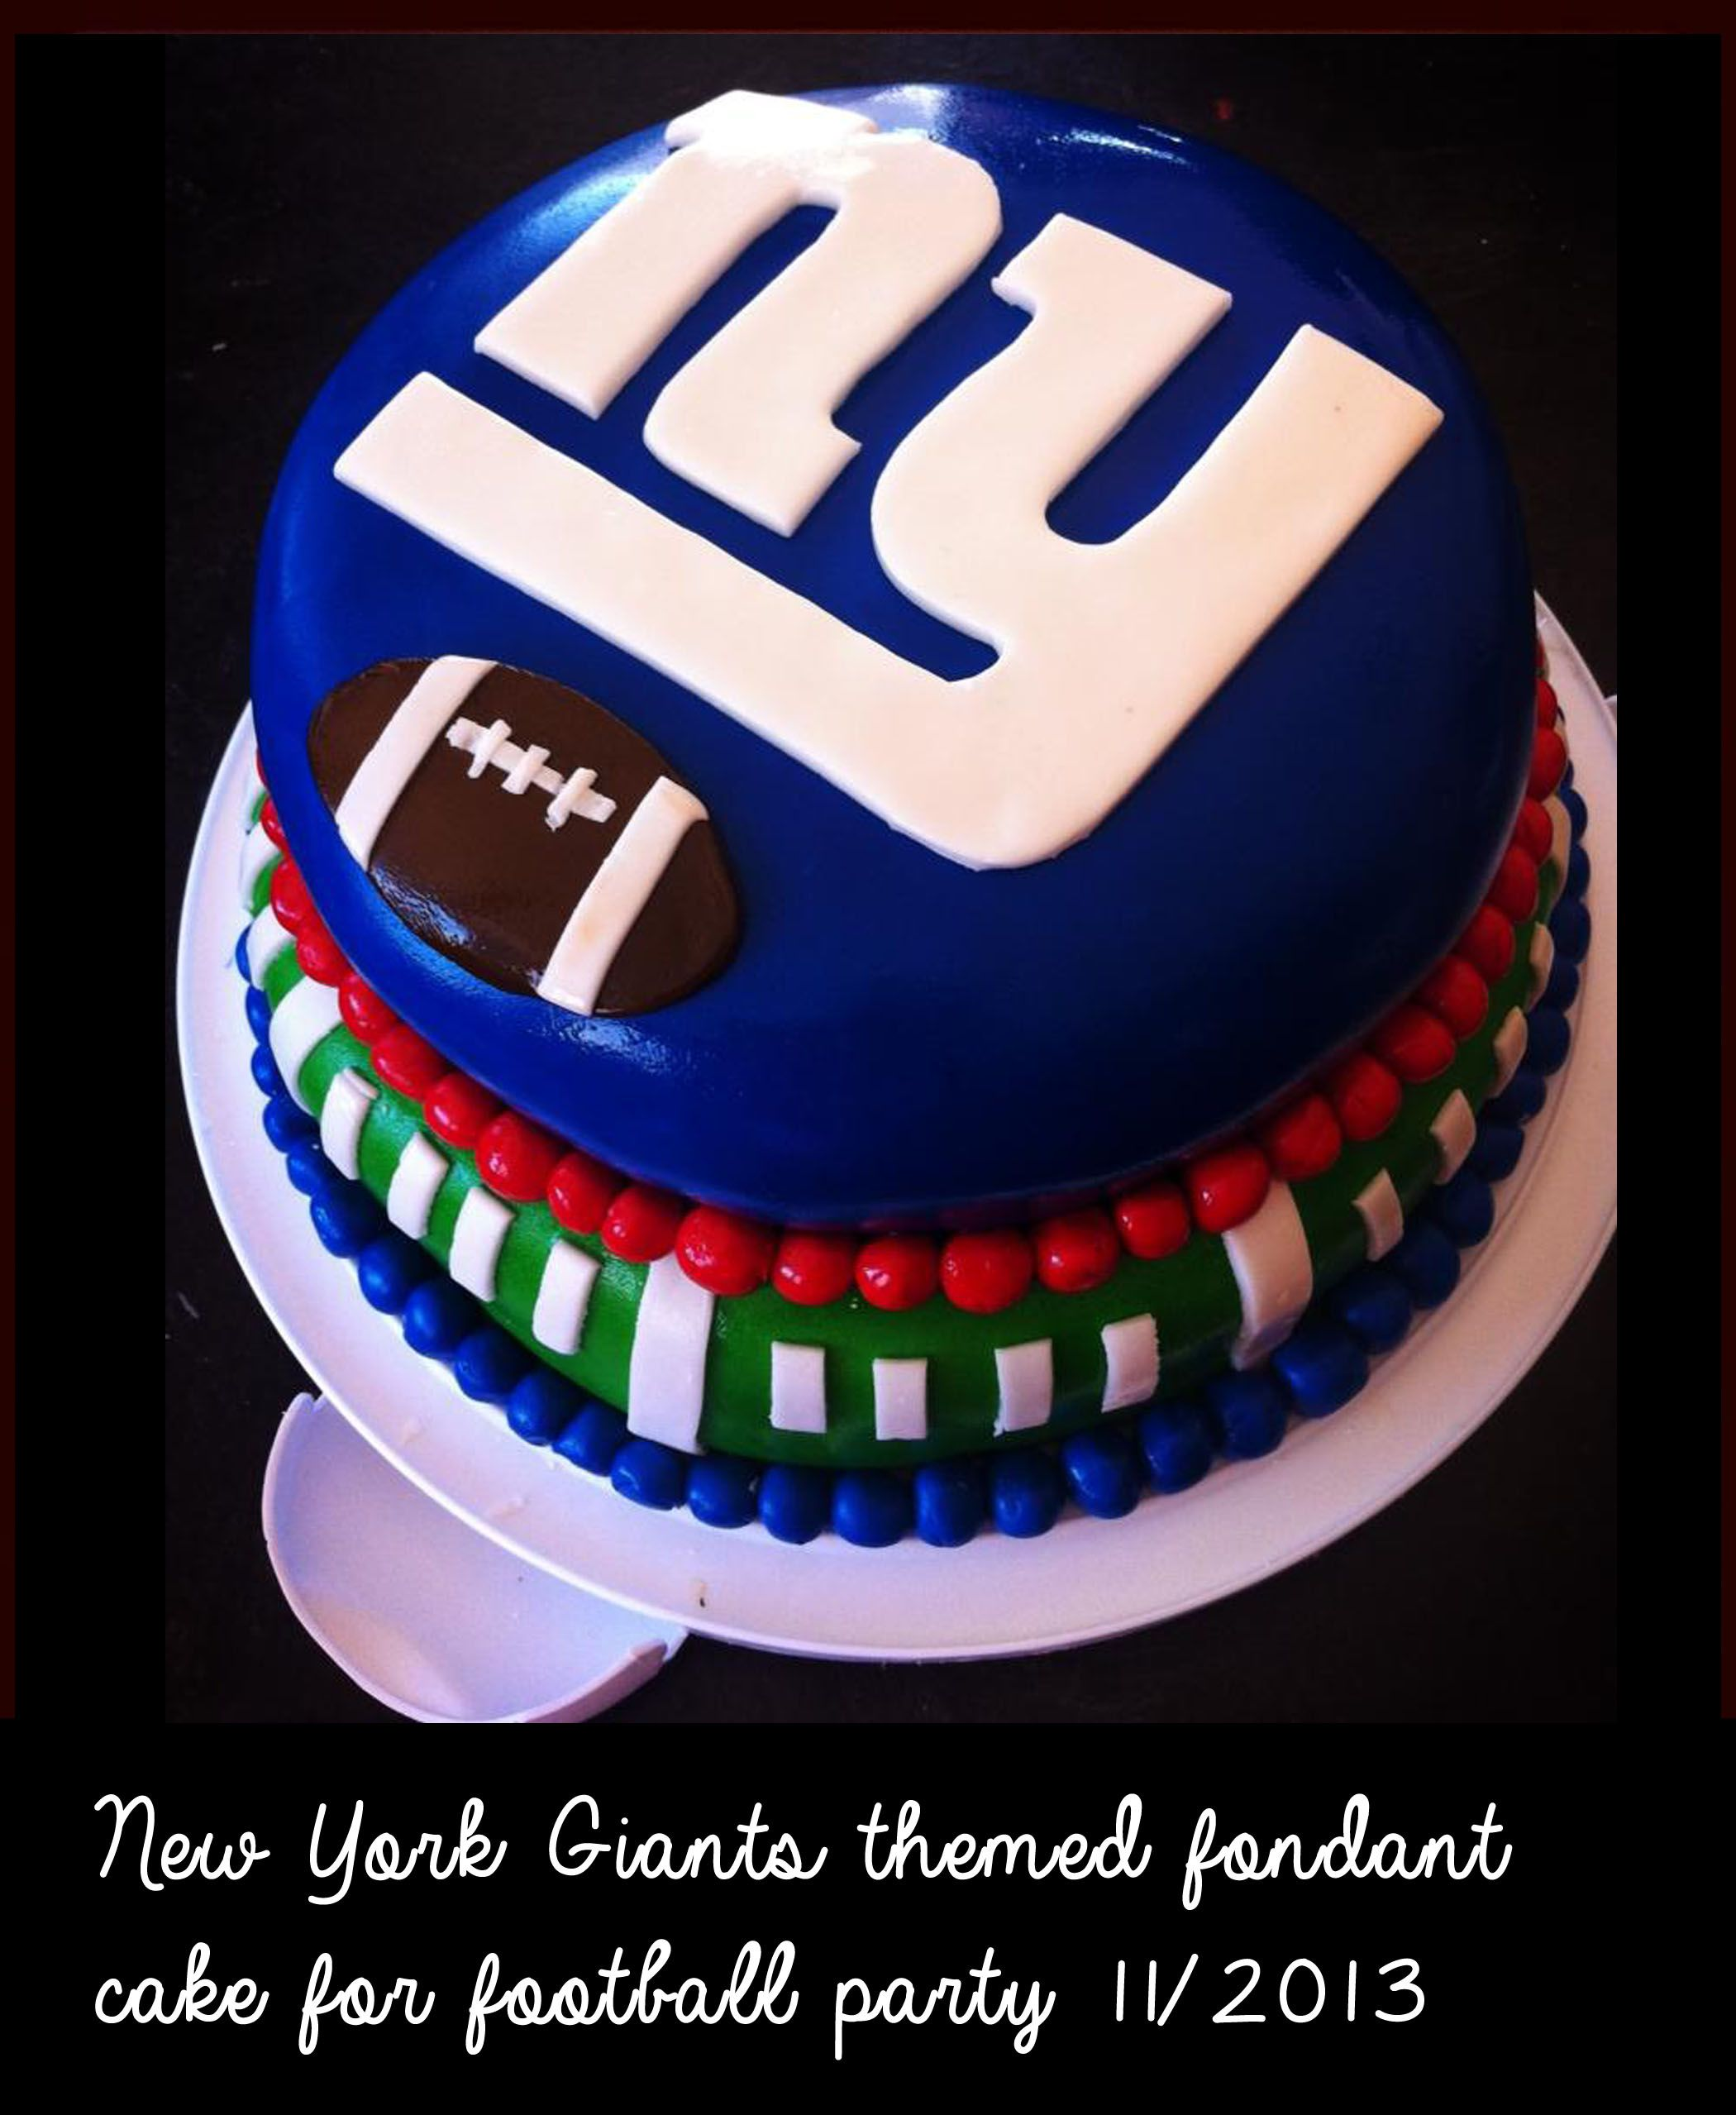 NY Giants Cake #NYGiants #Giants #fondant #cakes | New York Giants ...